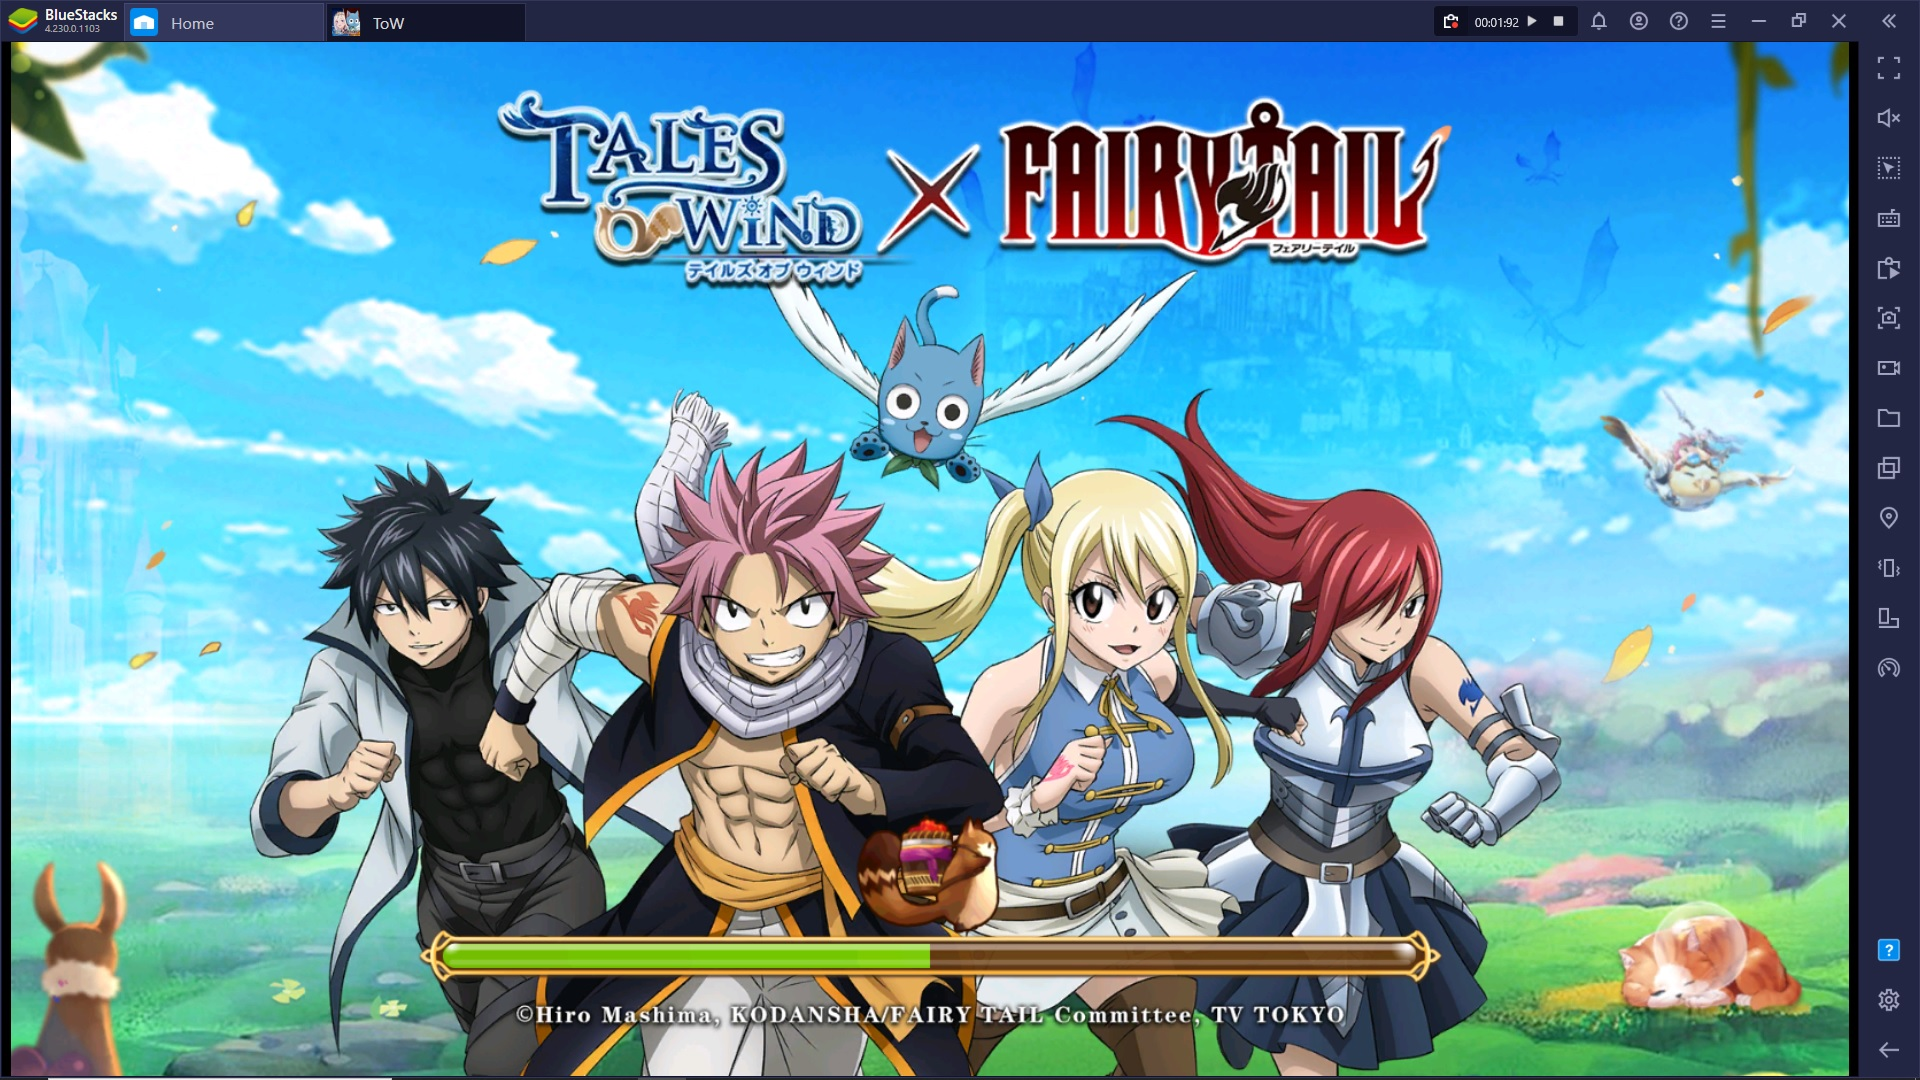 Gioca su Bluestacks Tales of Wind, ora in collaborazione con Fairy Tail